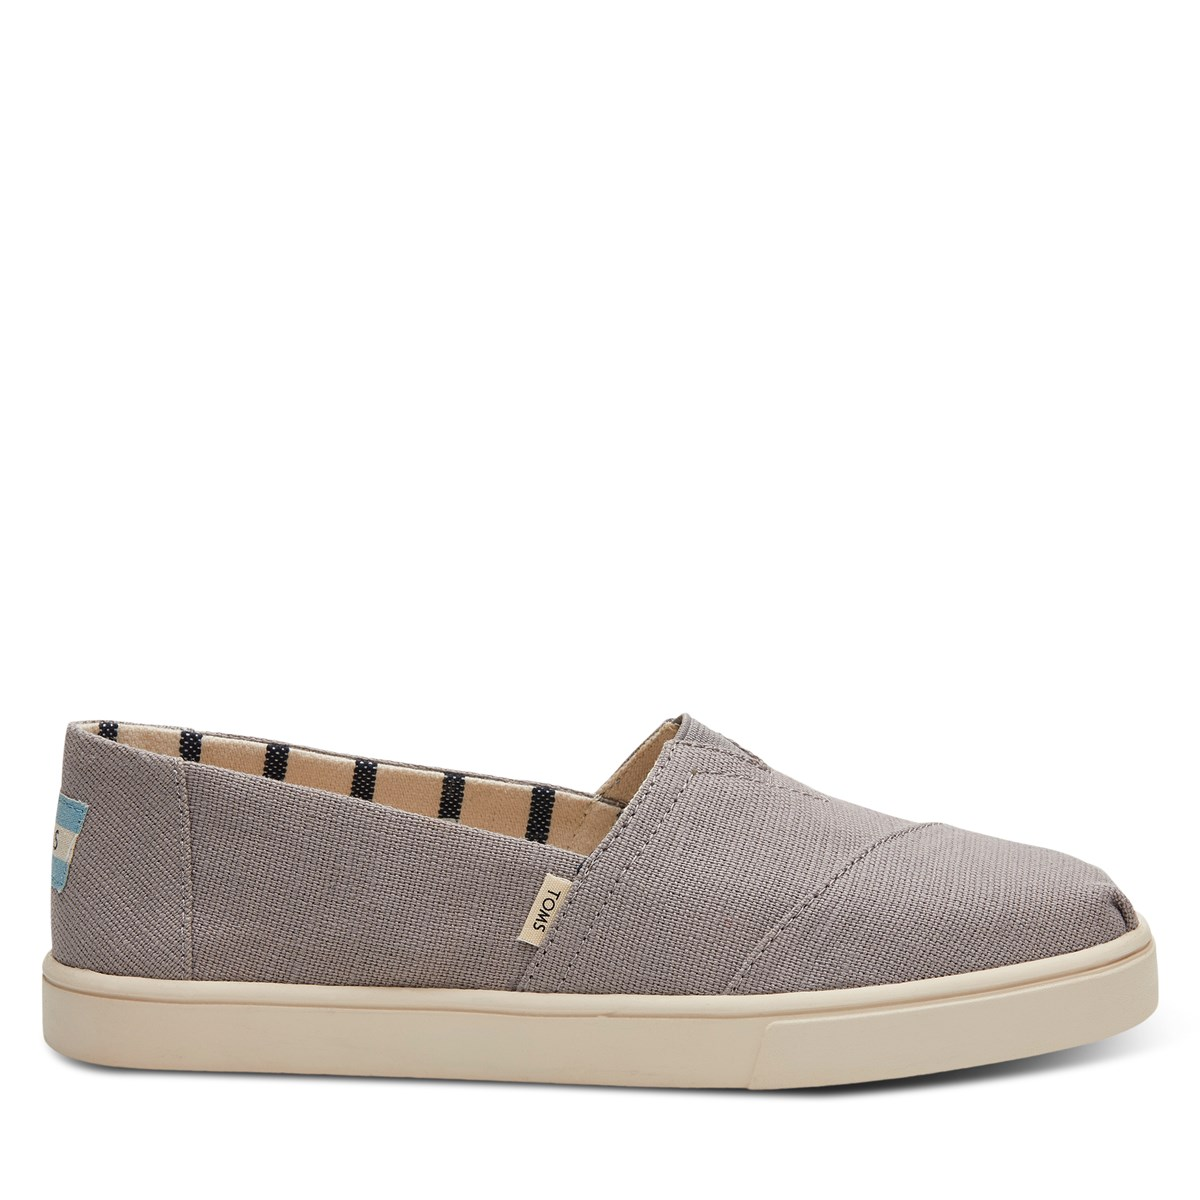 Women's Alpargata Slip-Ons in Grey